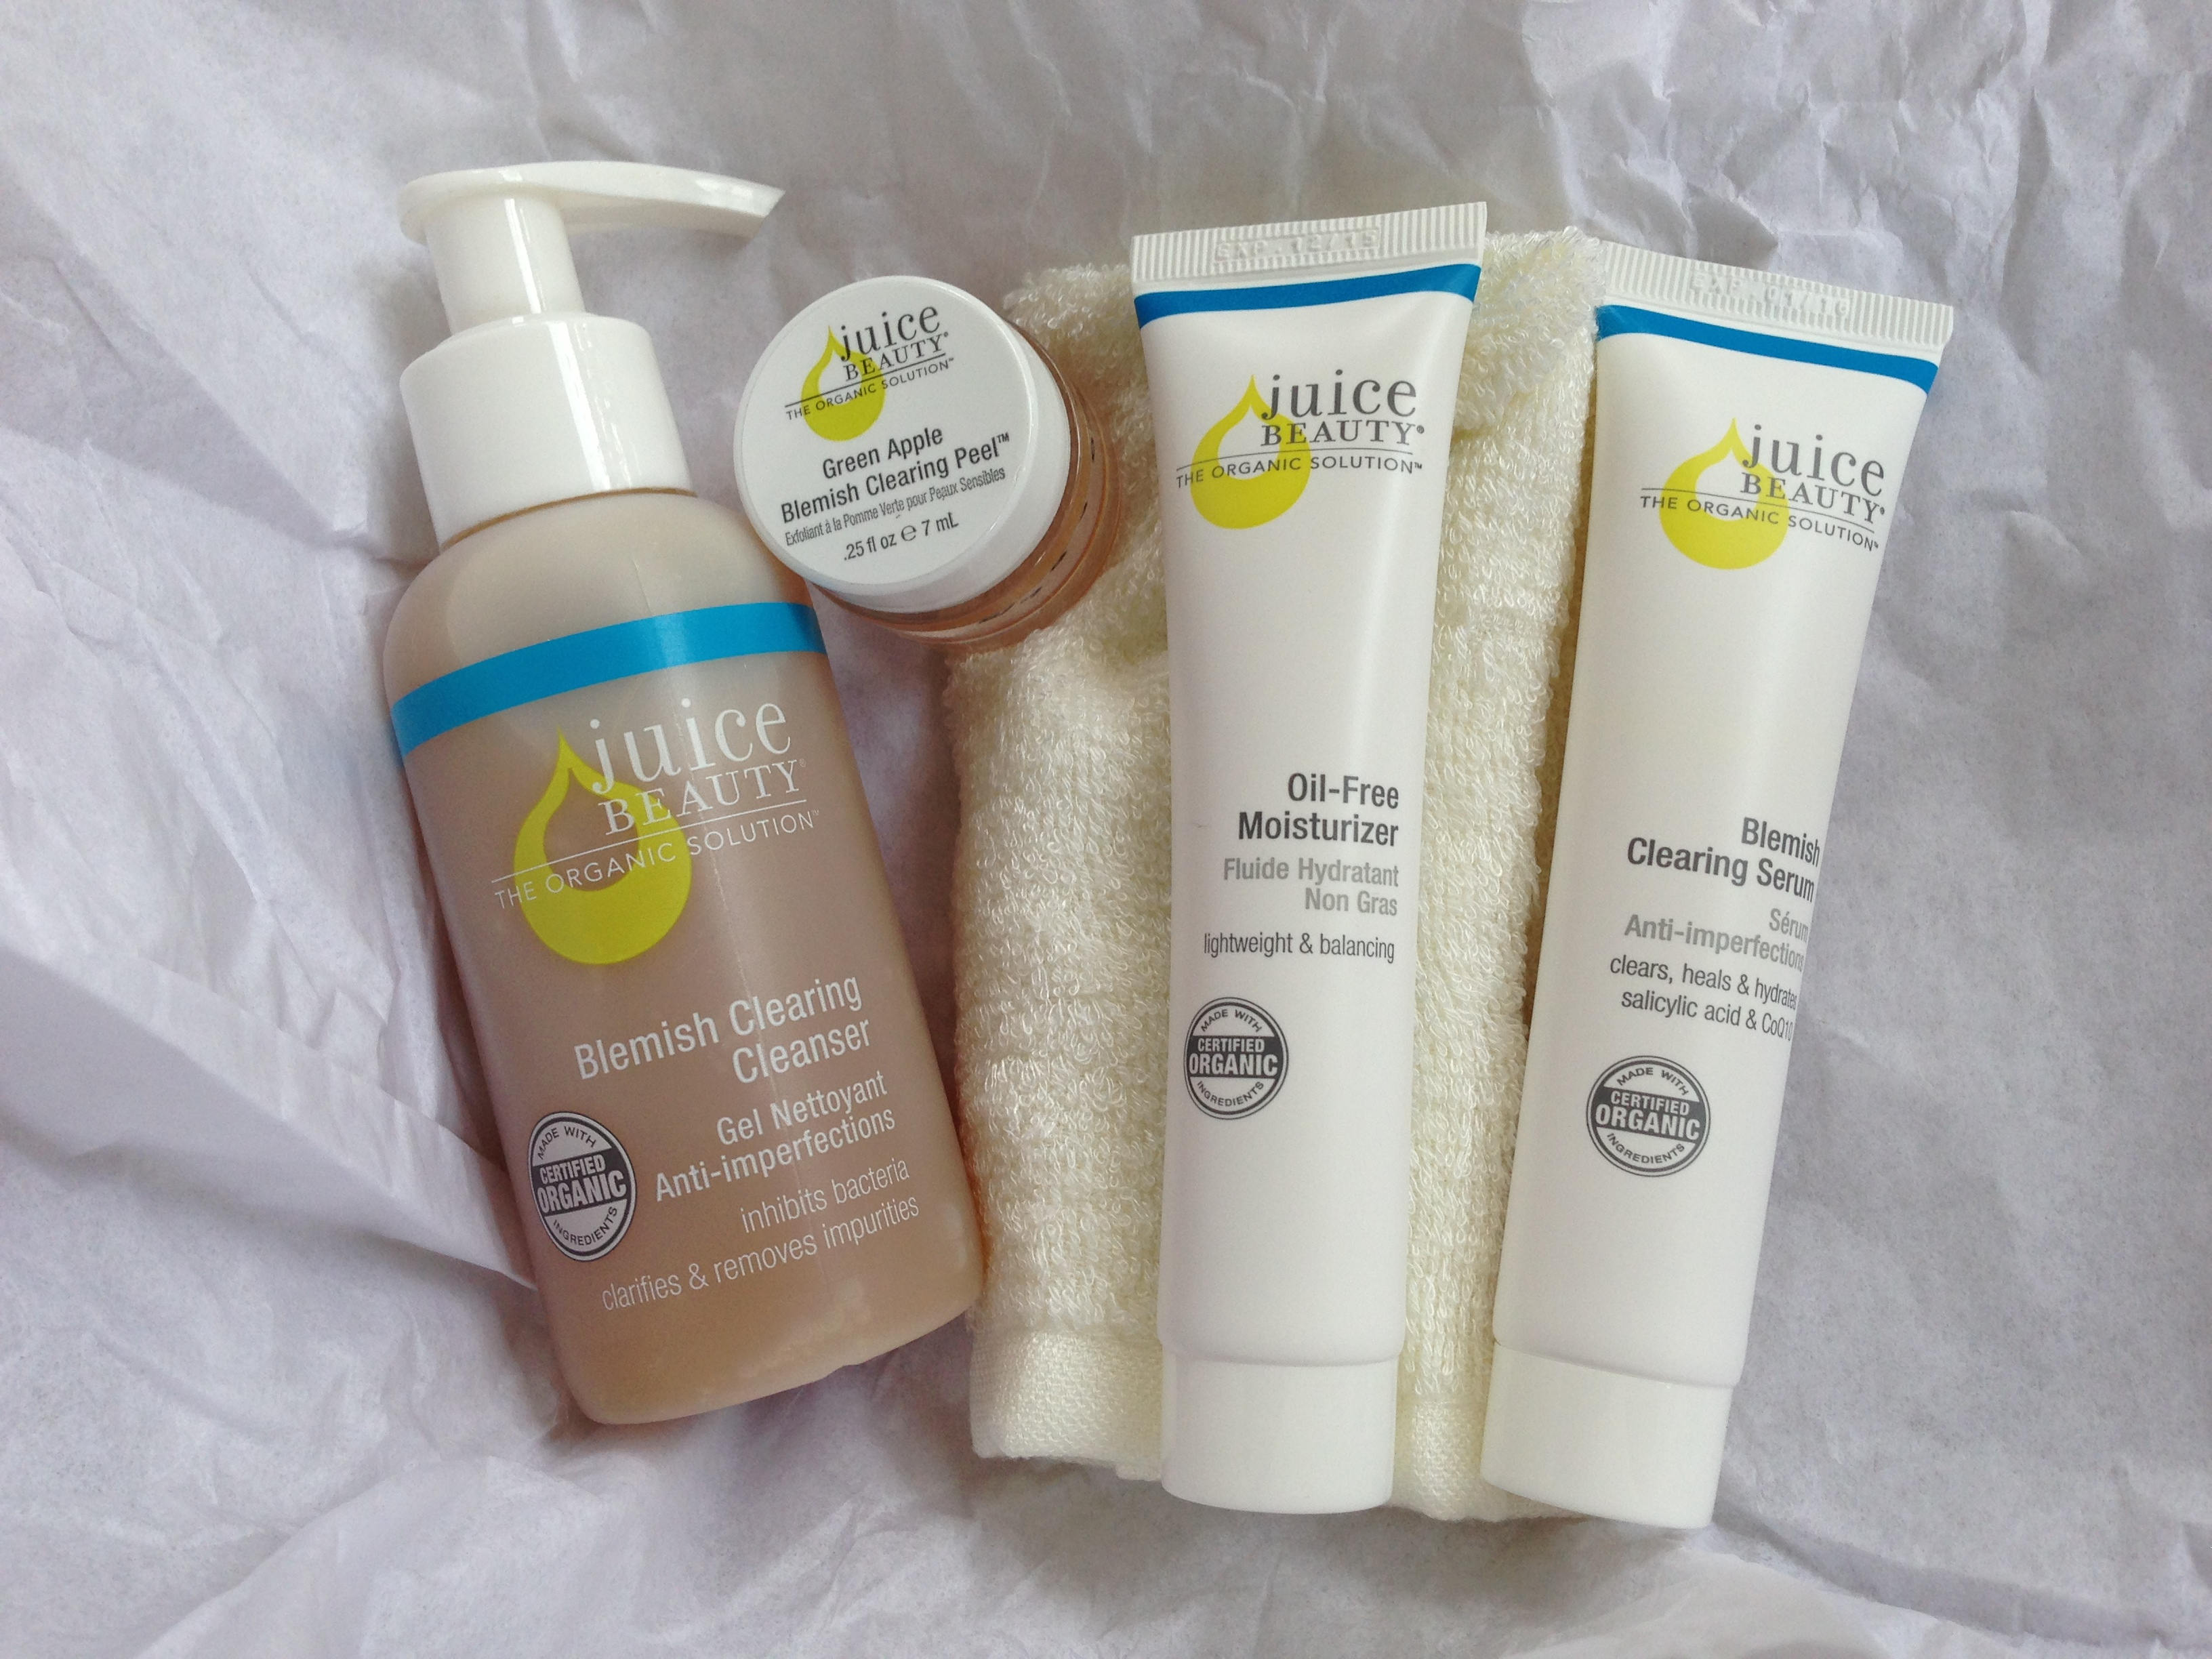 juice beauty blemish clearing kit